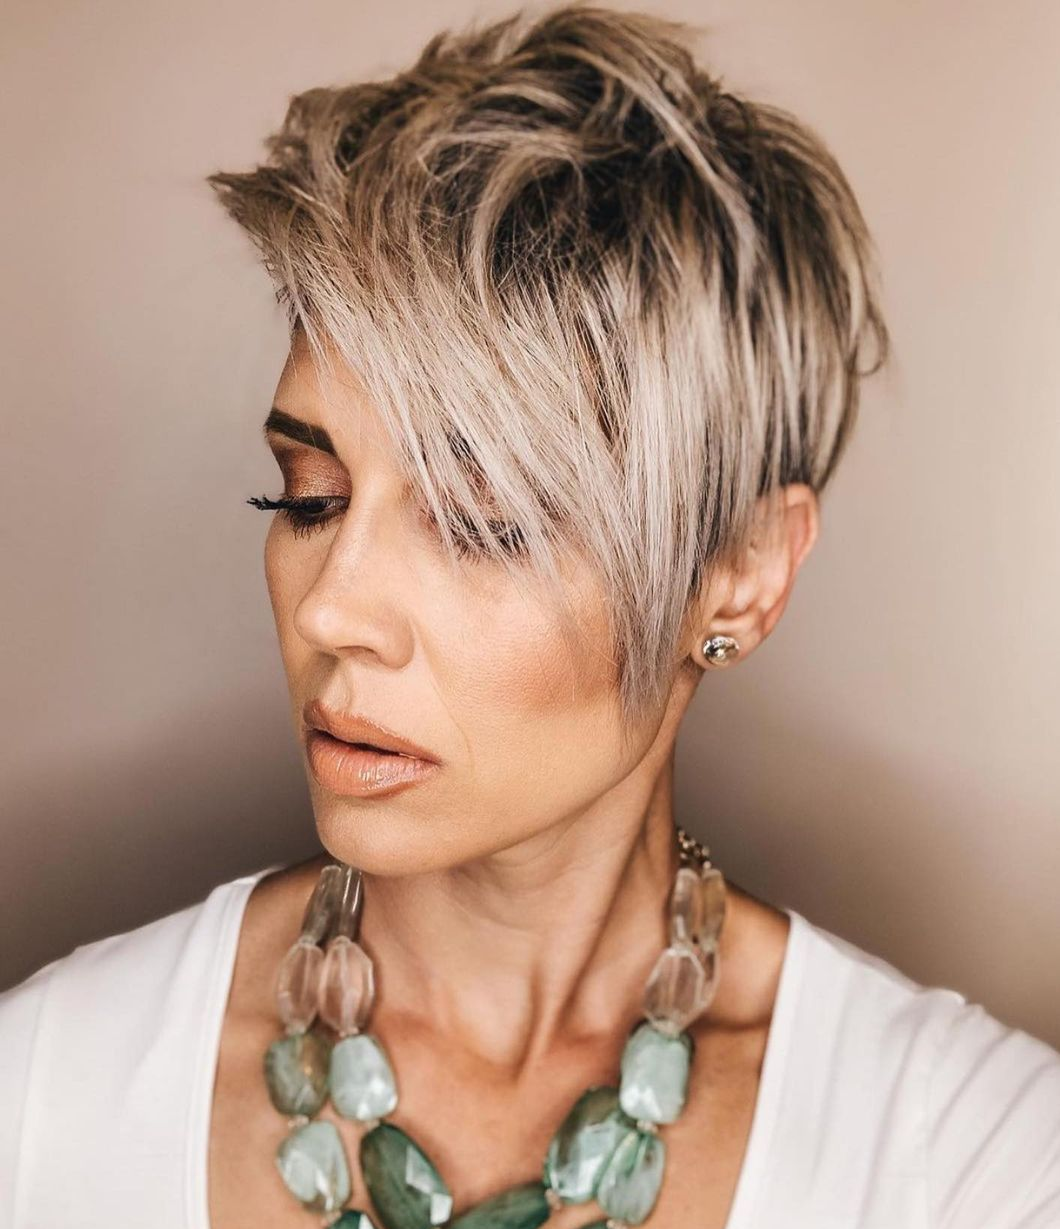 15 Hair Color Ideas for Short Hair to Refresh Your Style